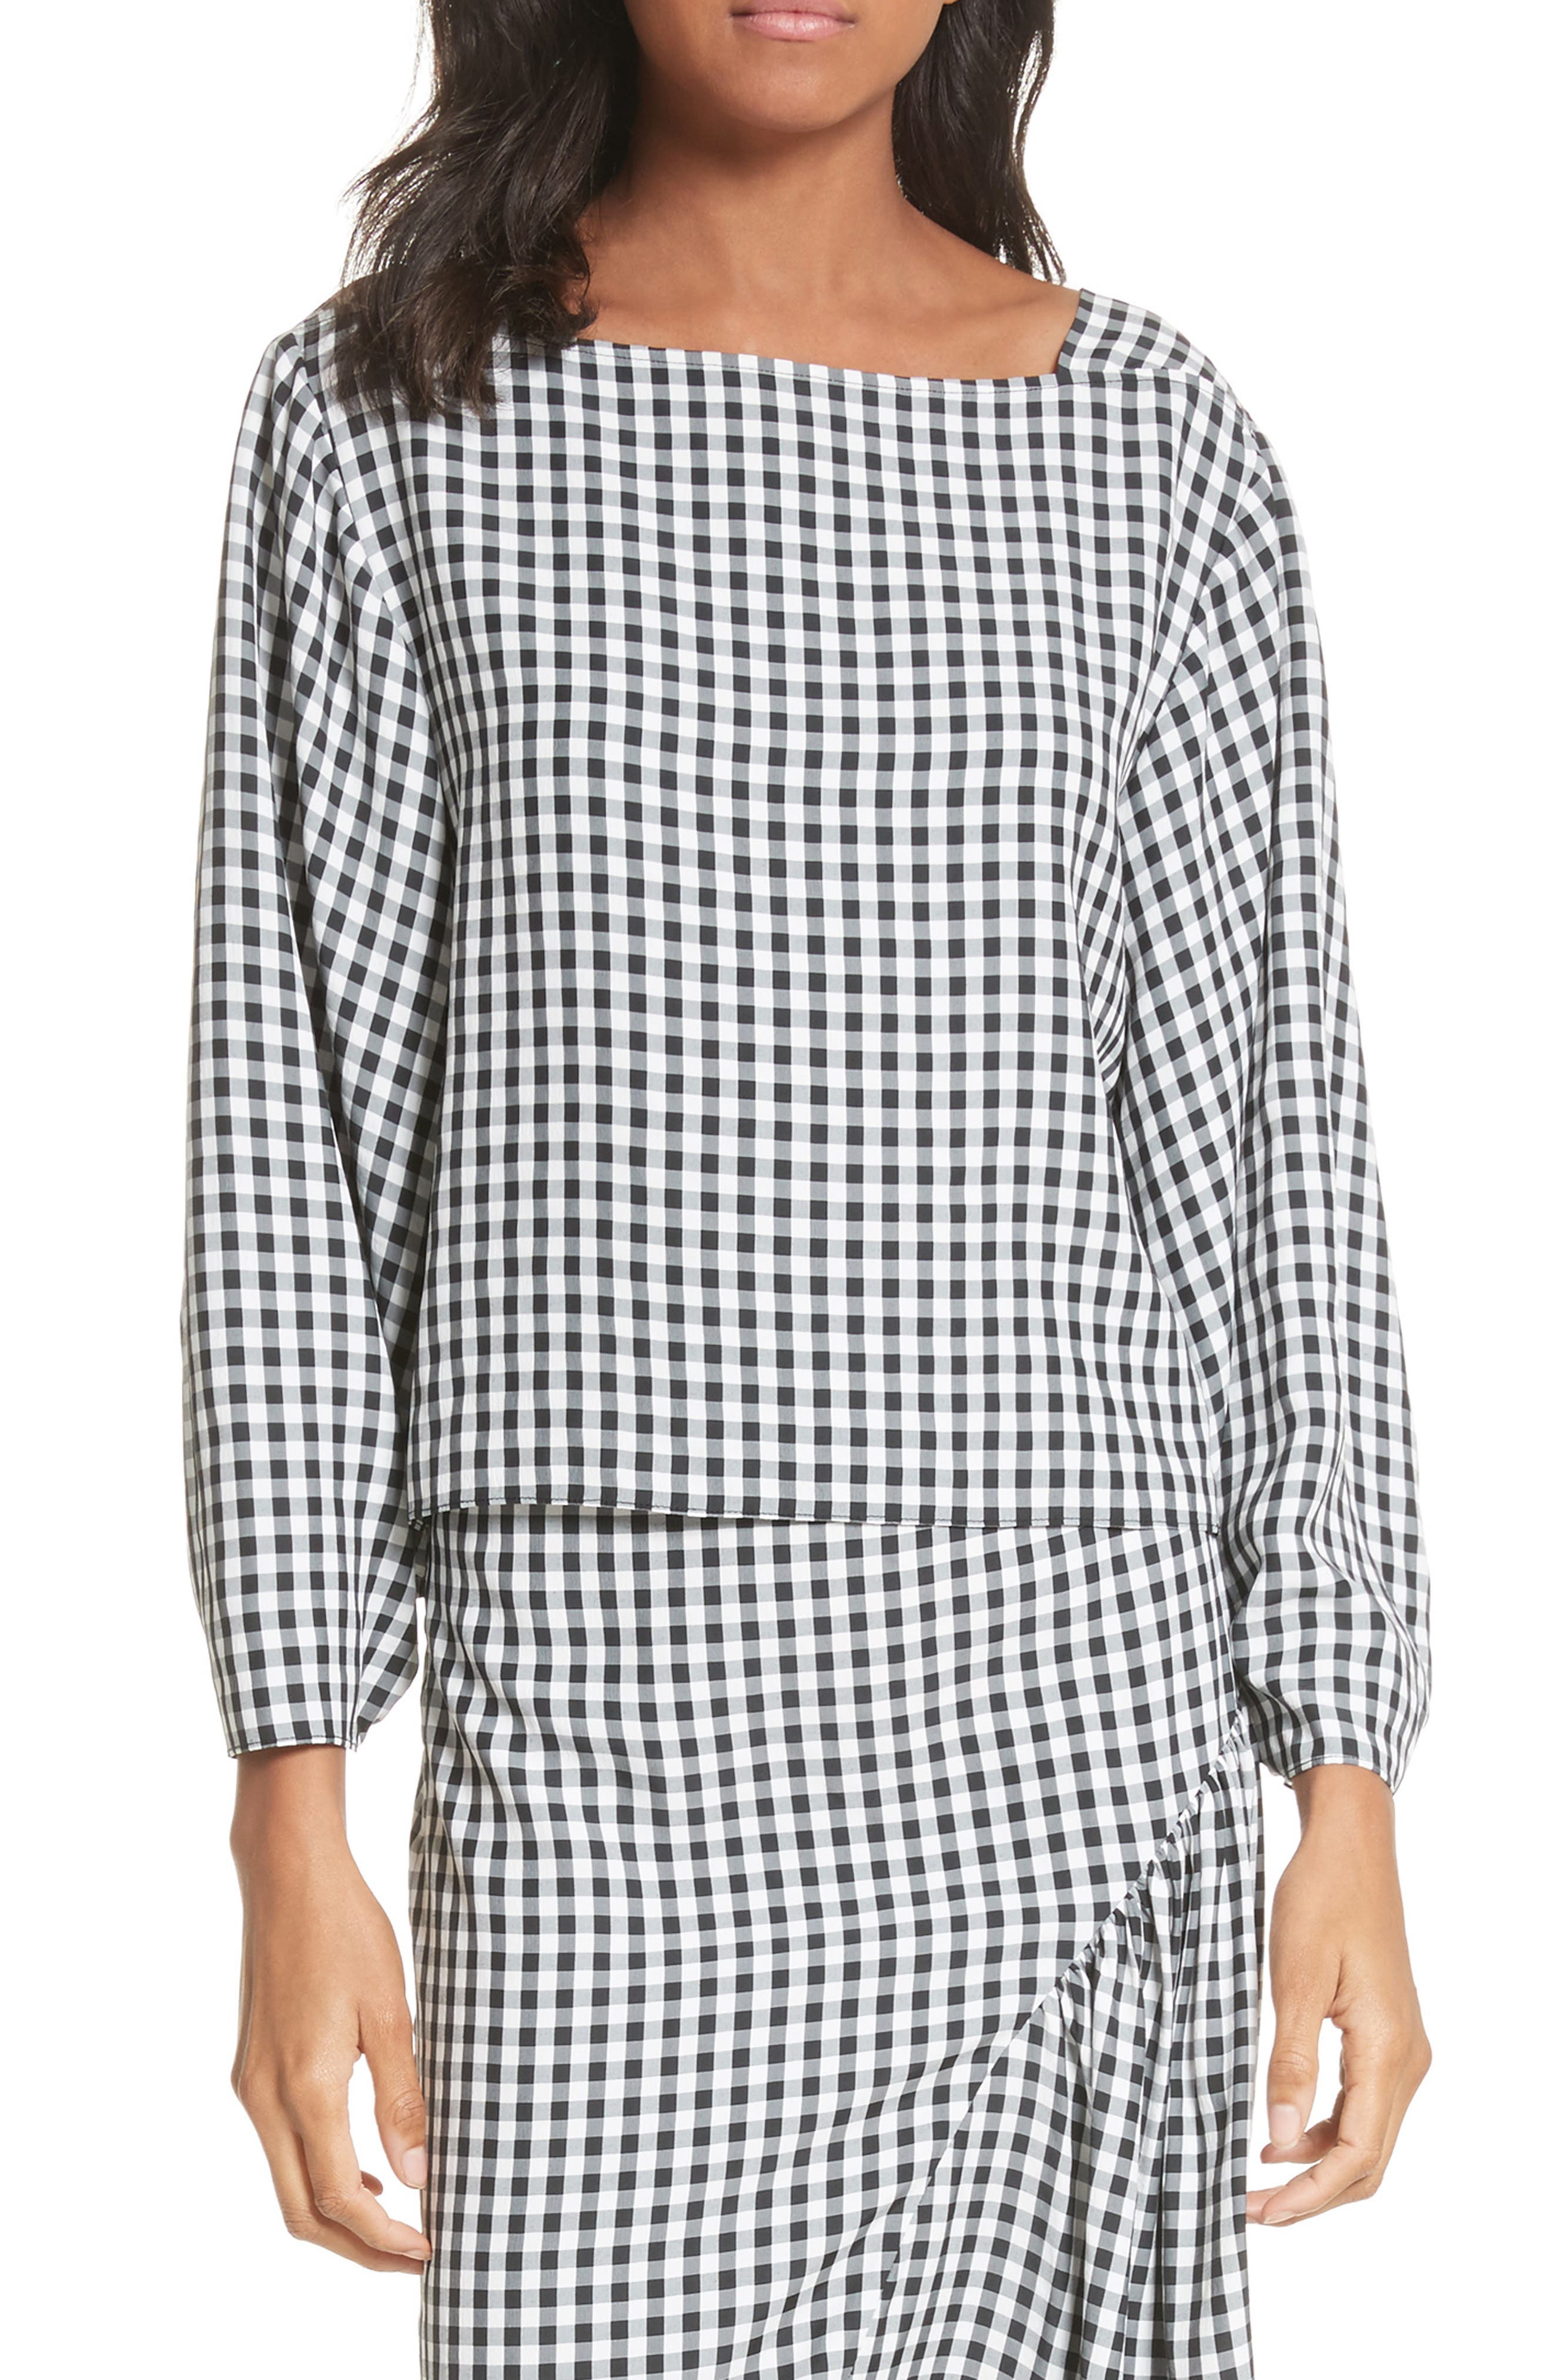 Gingham Top,                         Main,                         color, 006